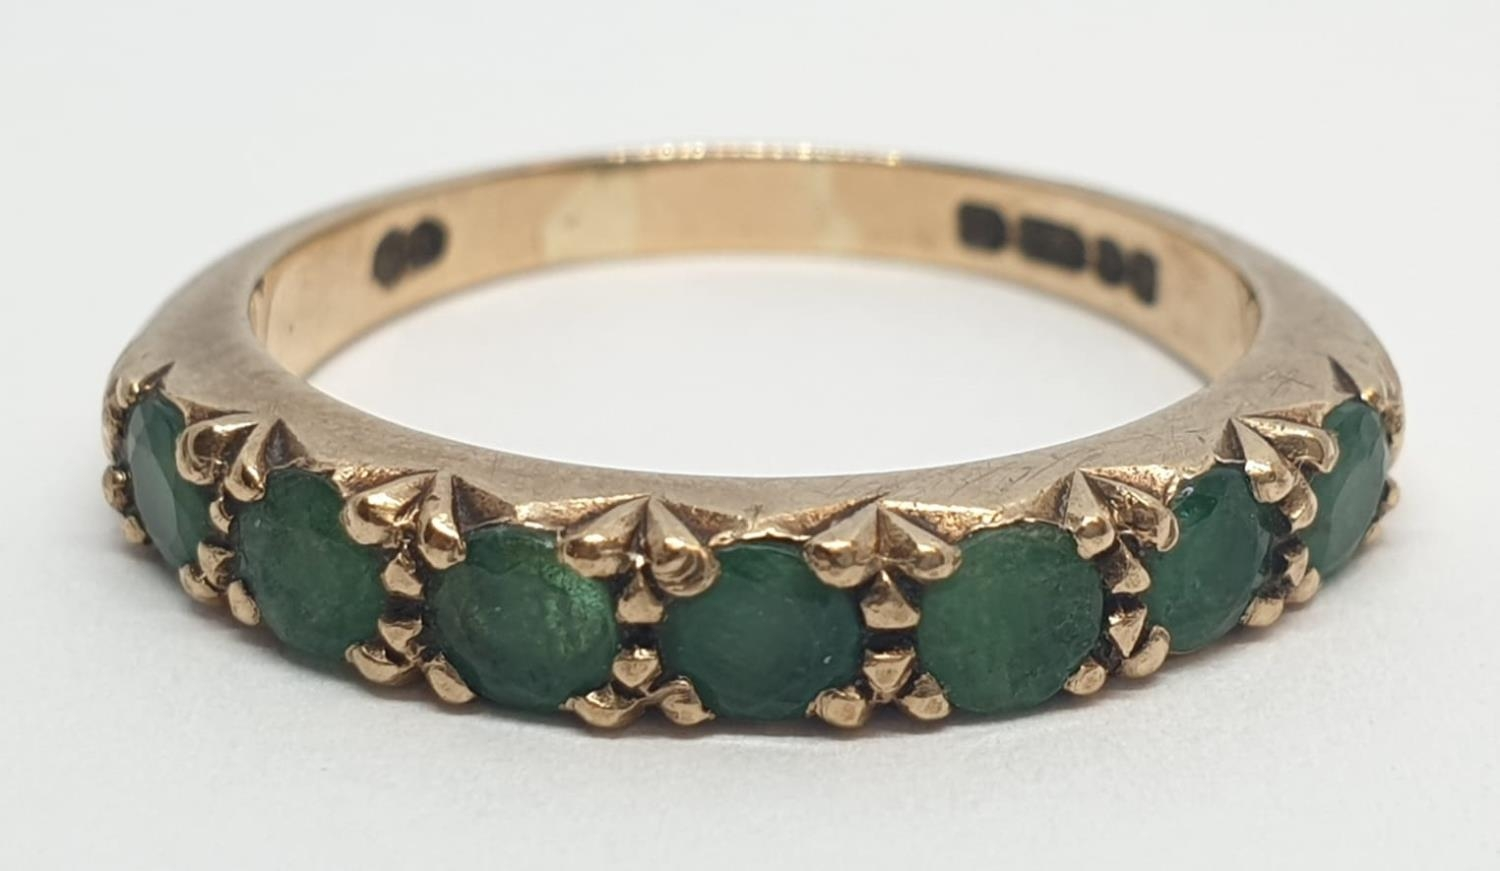 9ct Yellow gold emerald half eternity ring. Weight 2.8g, Size O.